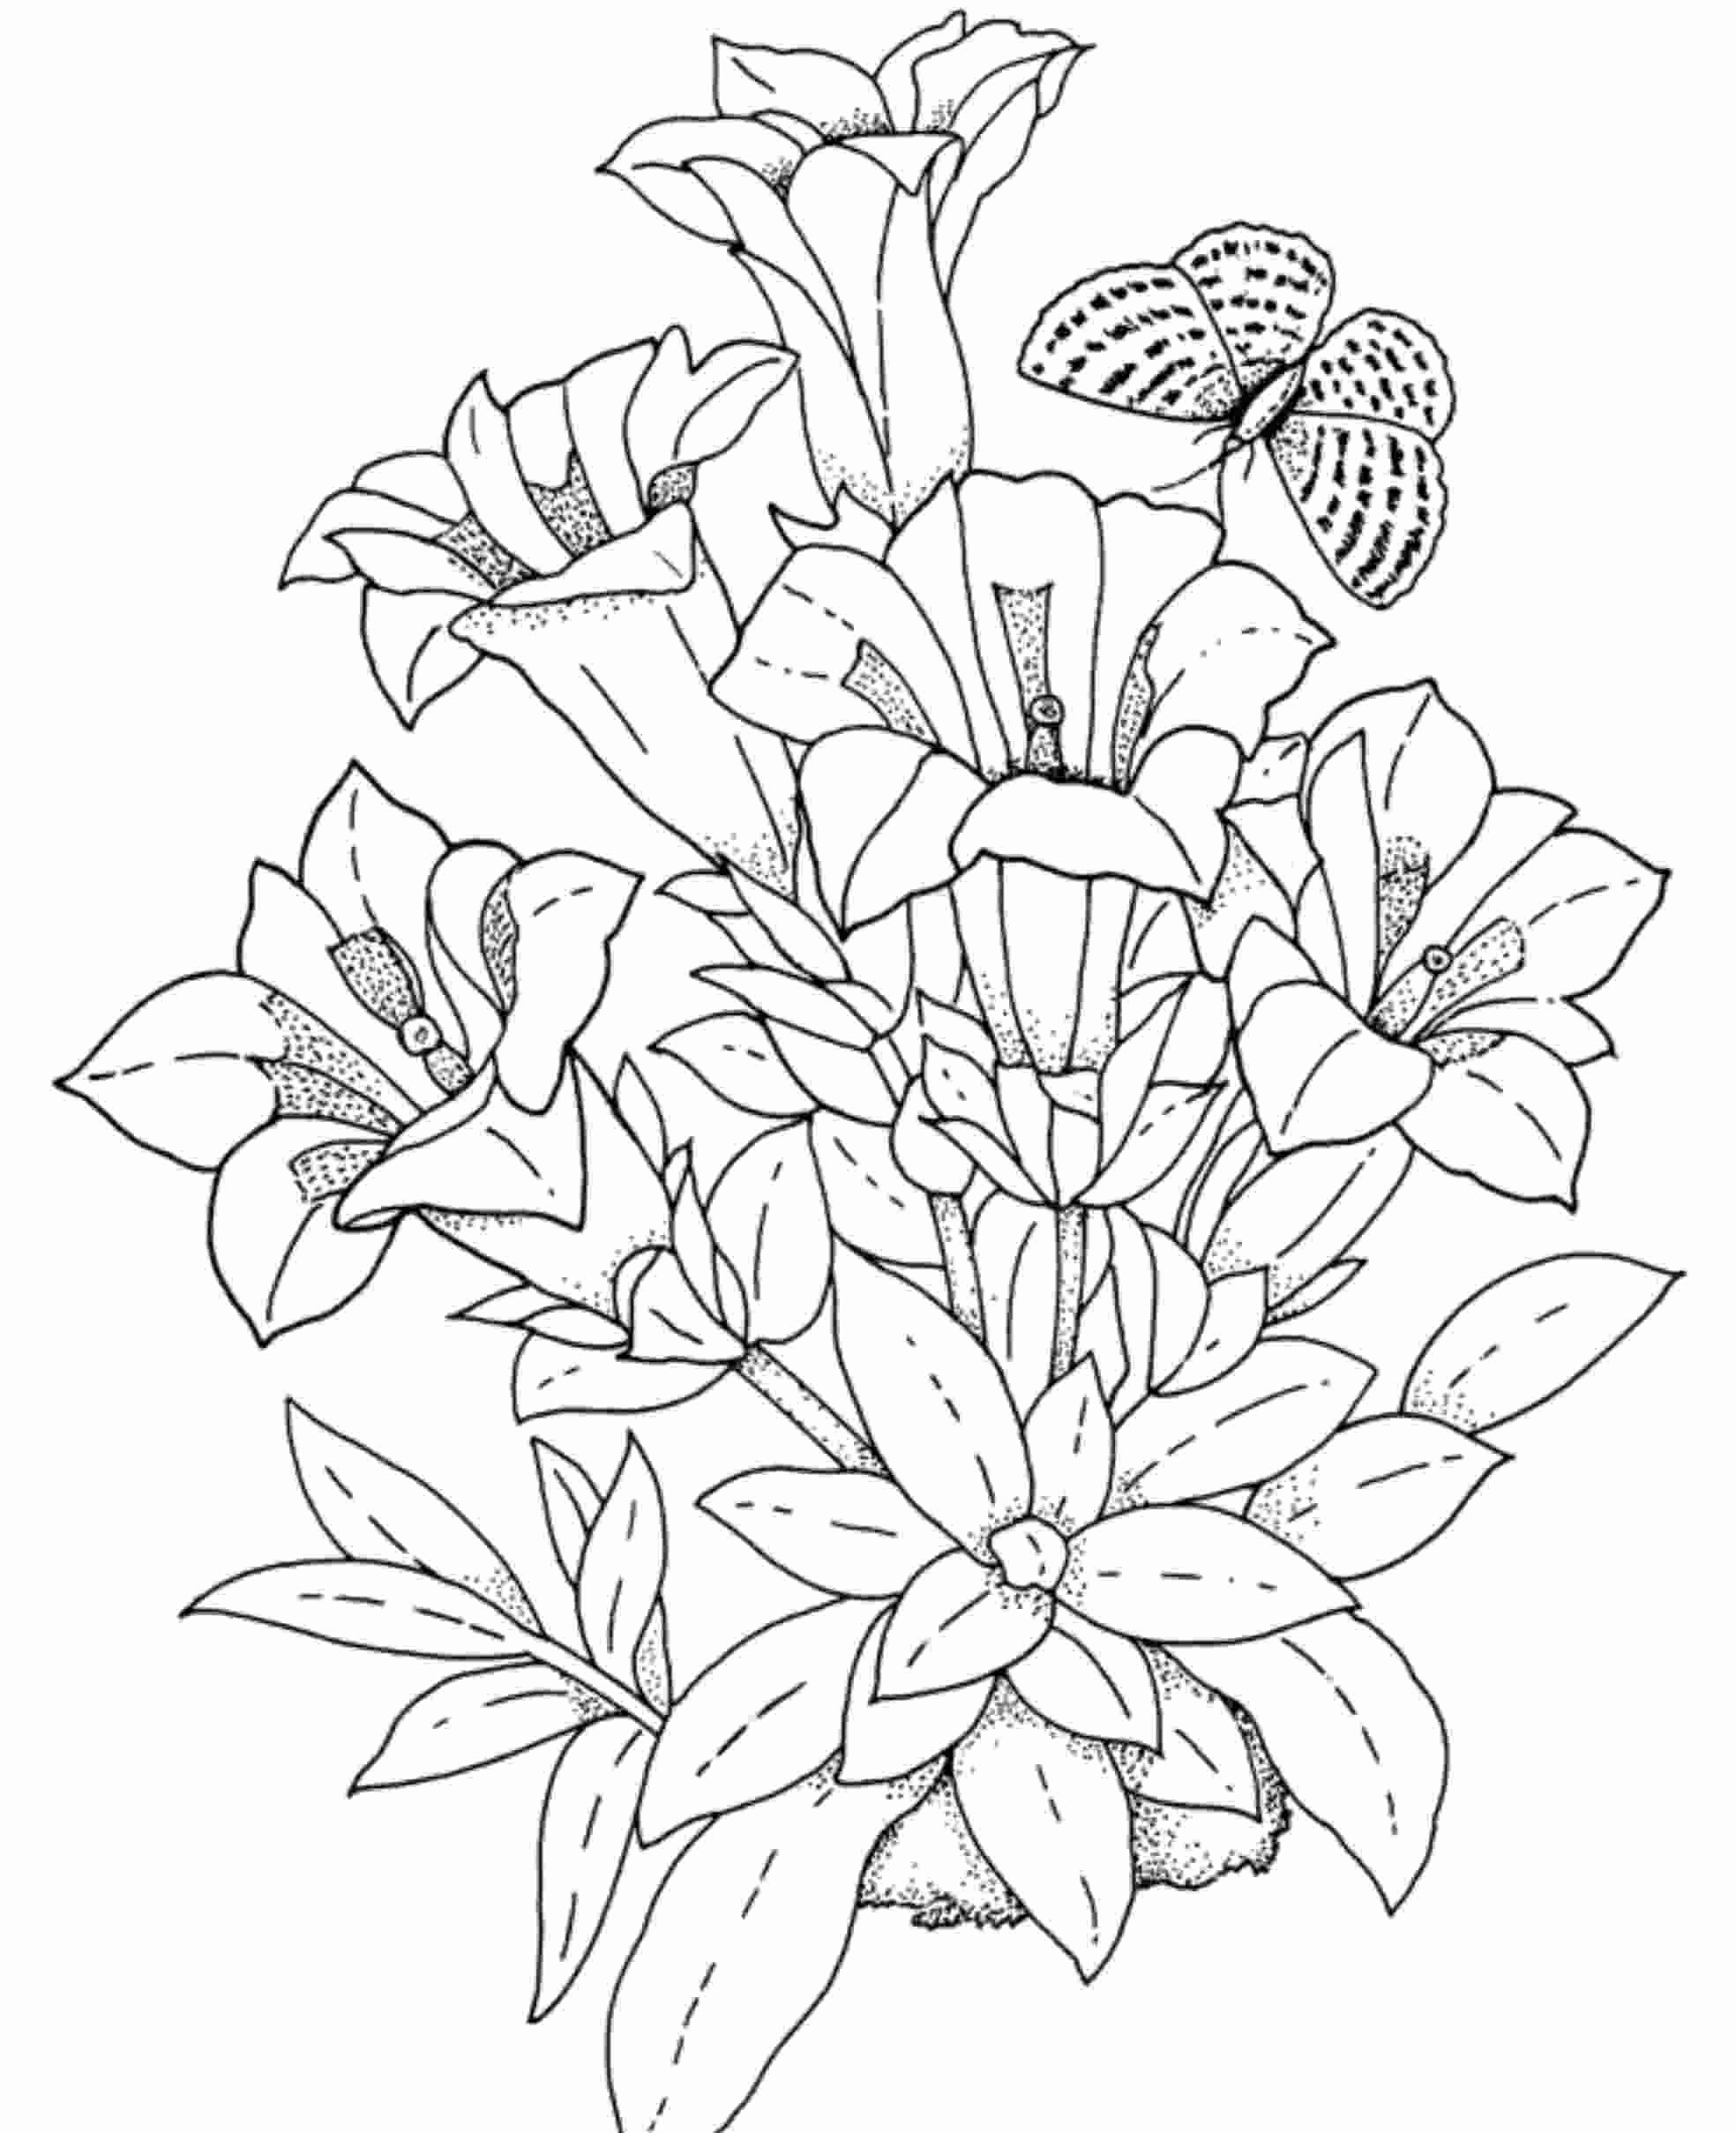 Free Printable Flower Coloring Pages For Kids Sunflower Coloring Pages Printable Flower Coloring Pages Butterfly Coloring Page